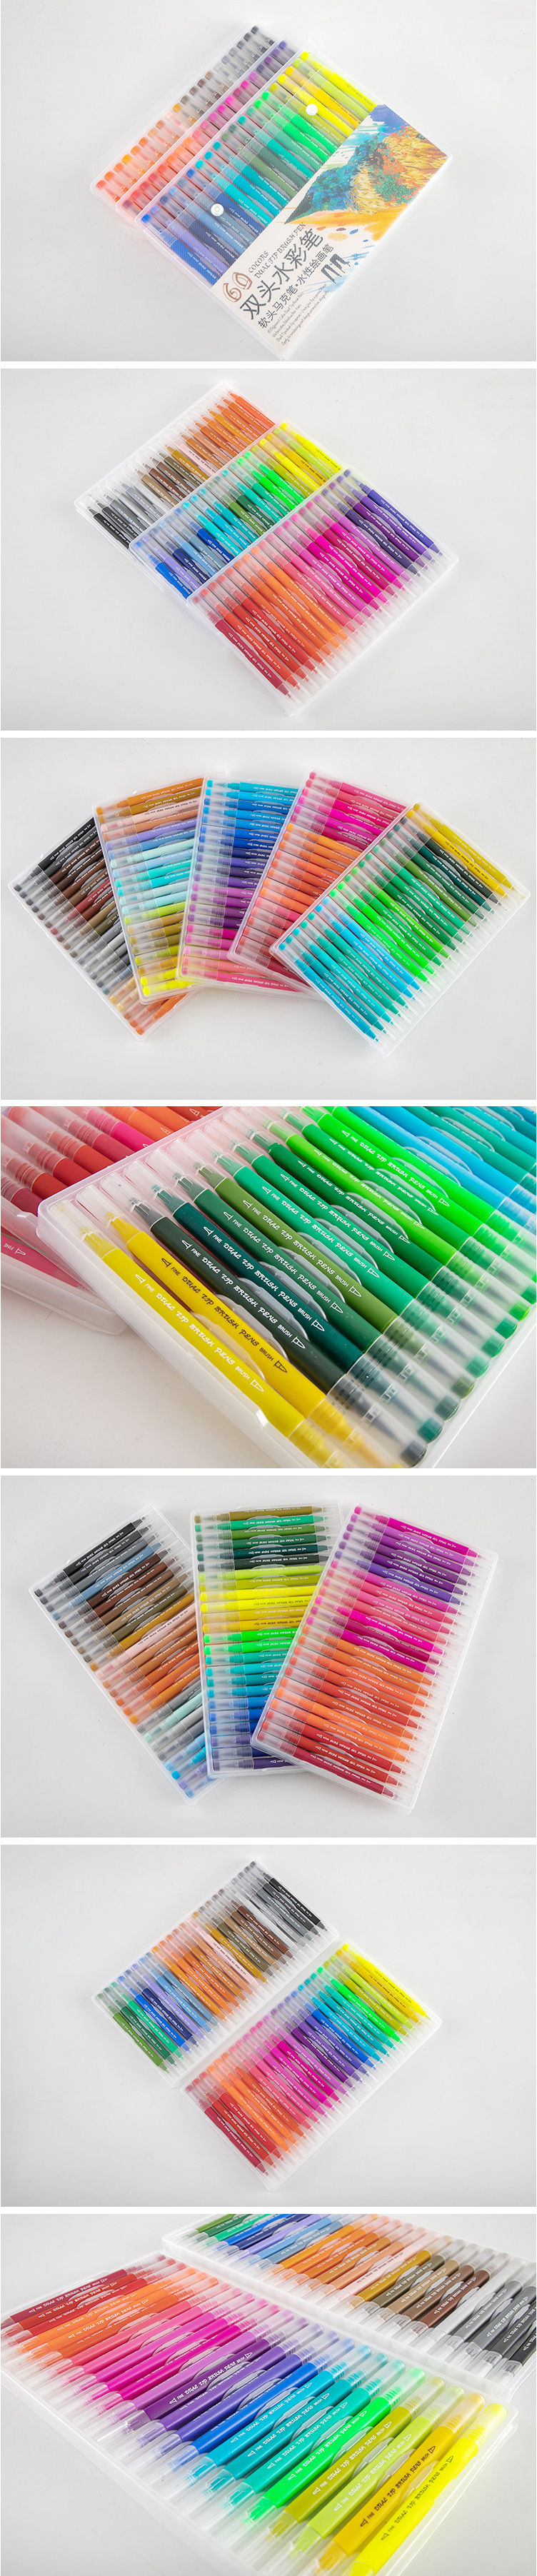 48/60/72/100 Pcs Colors FineLiner Dual Tip Brush Pens Drawing Painting Watercolor Art Marker Pen School Supplies